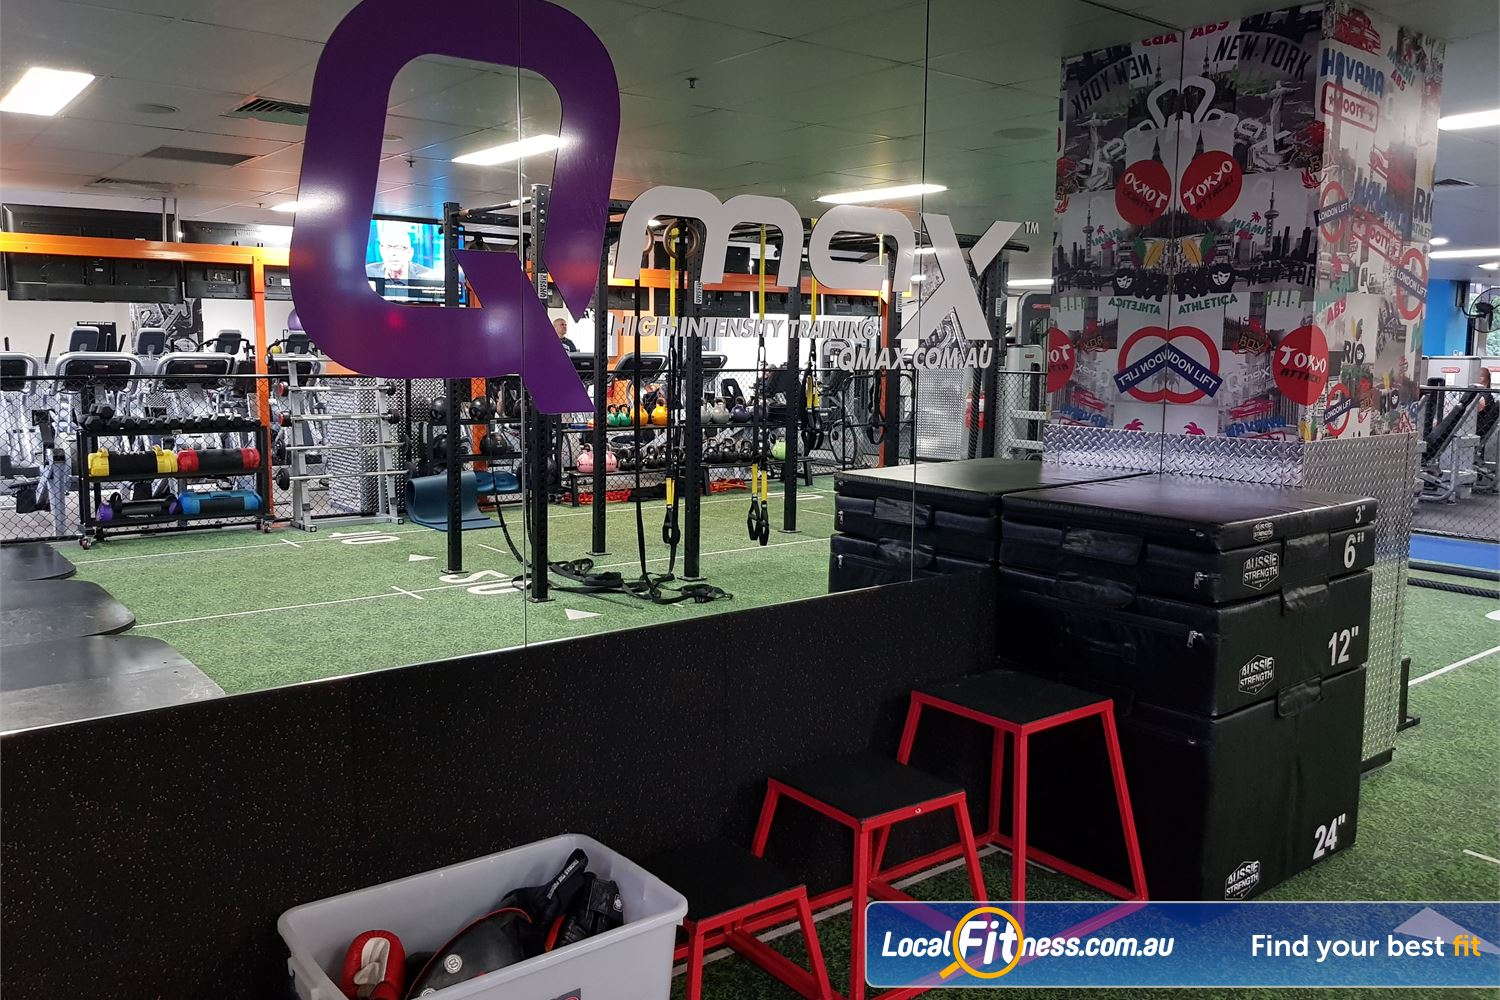 Fit n Fast Near Strathfield Our dedicated NSW Burwood HIIT gym provides QMAX functional training classes.